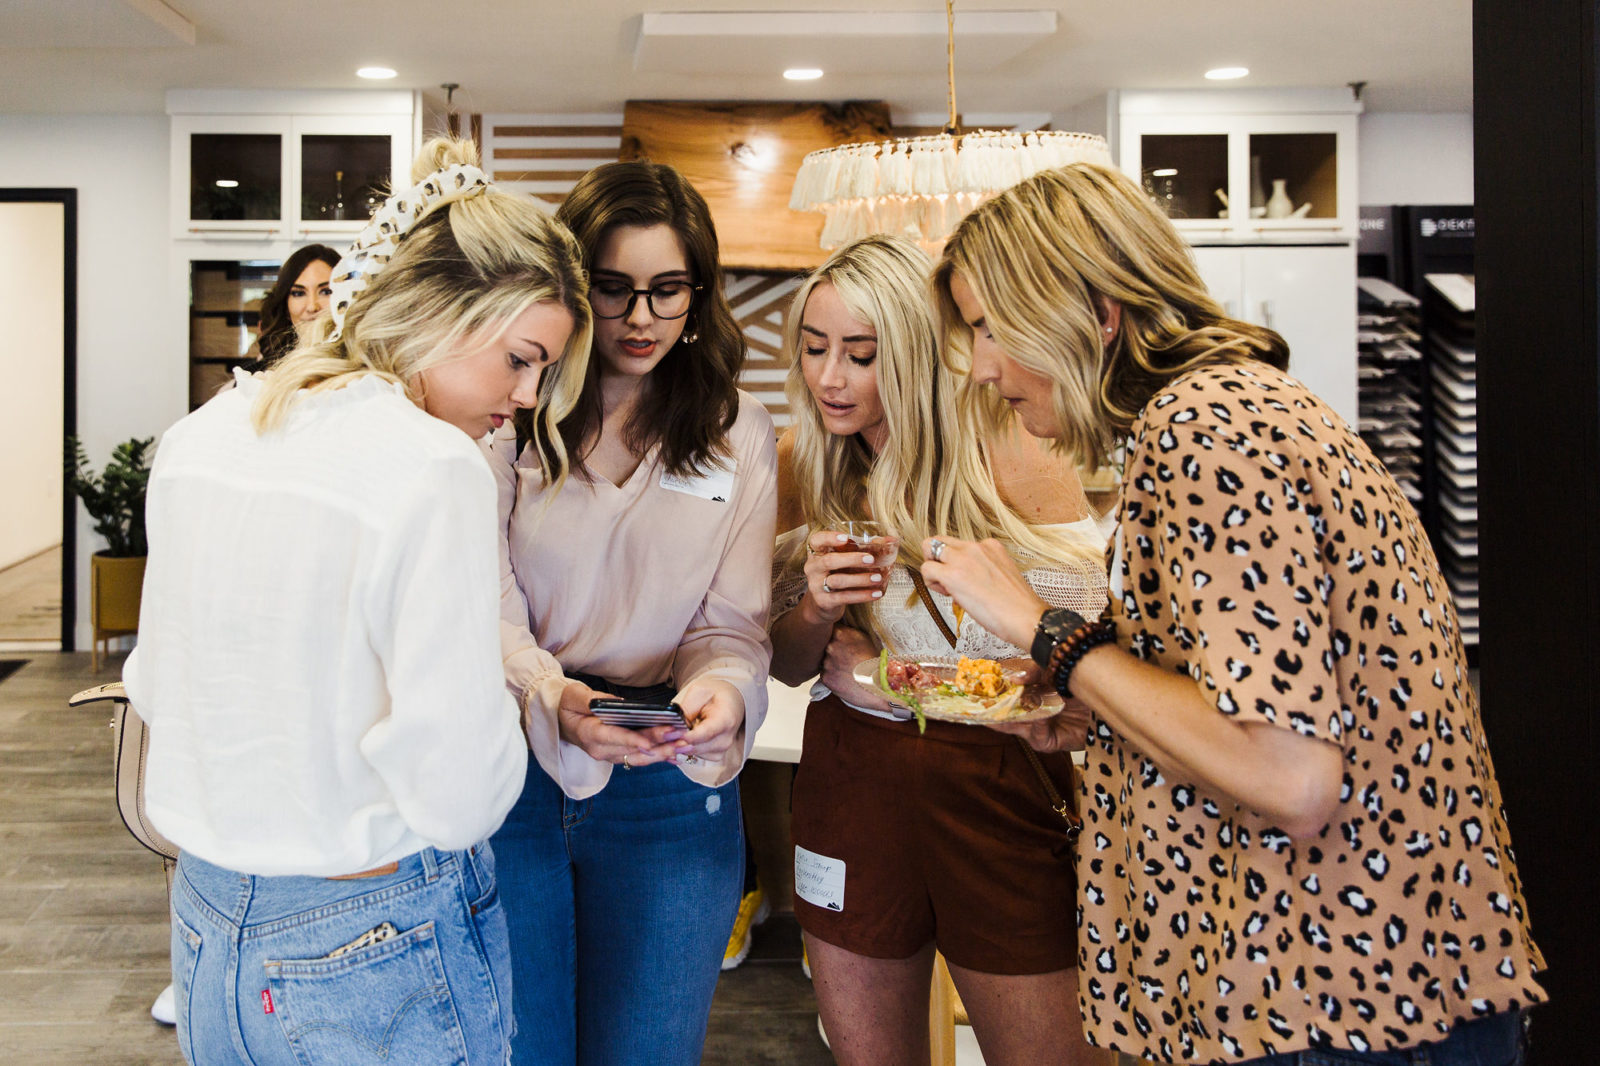 Our Influencer Event Rocked